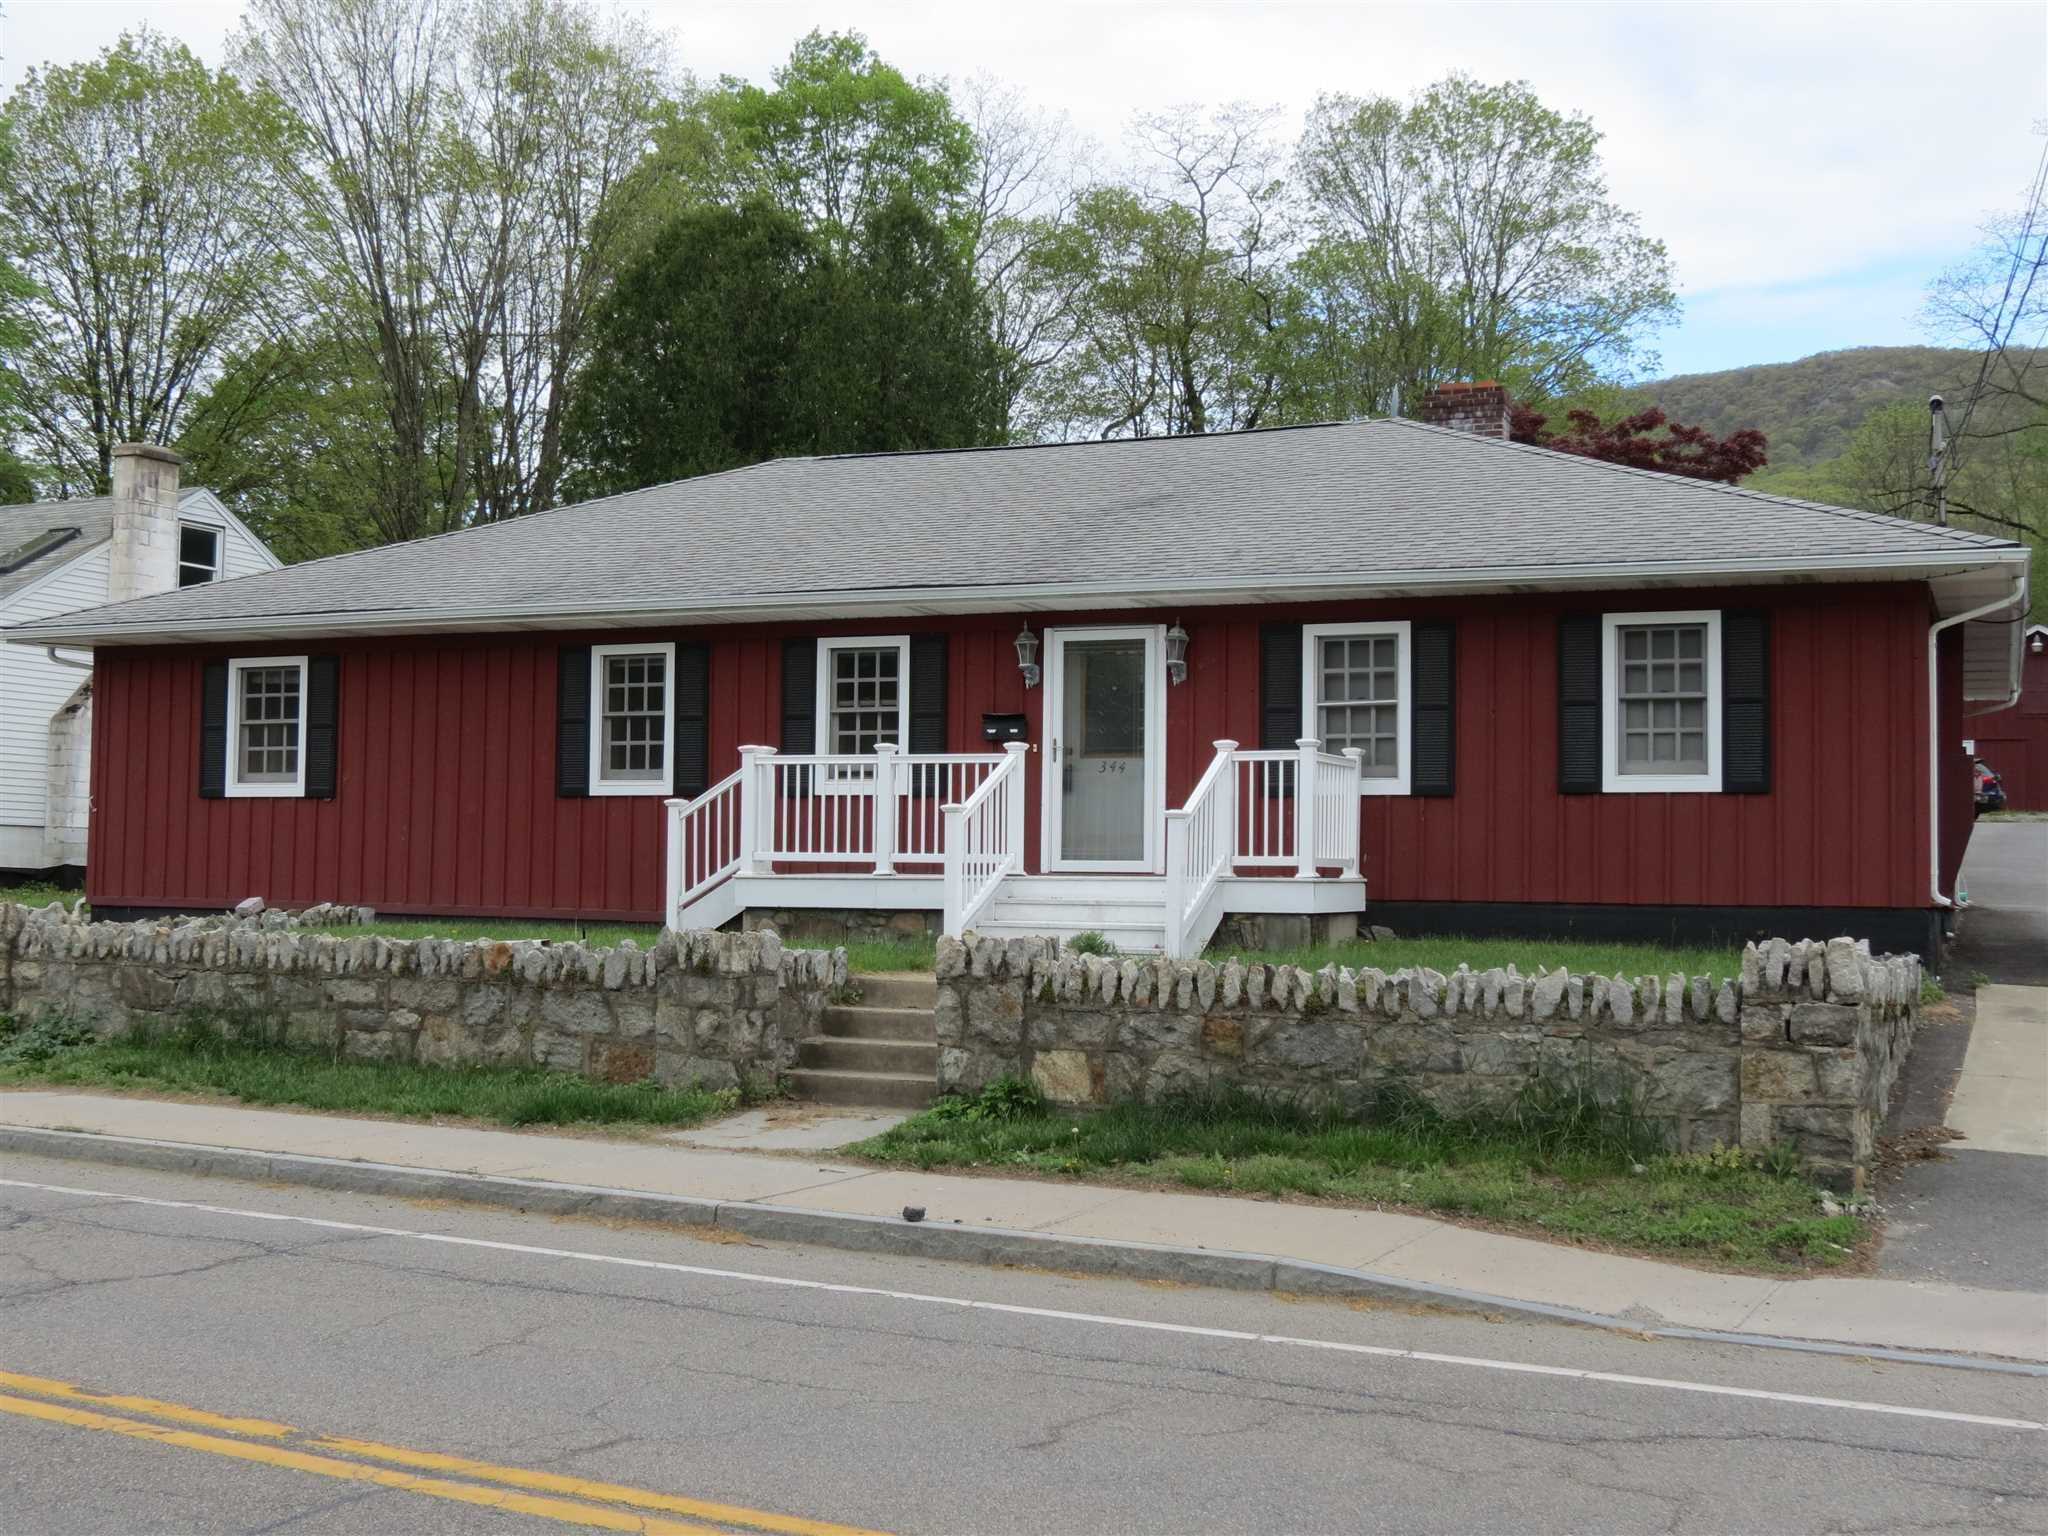 Single Family Home for Sale at 344 MAIN 344 MAIN Philipstown, New York 10516 United States